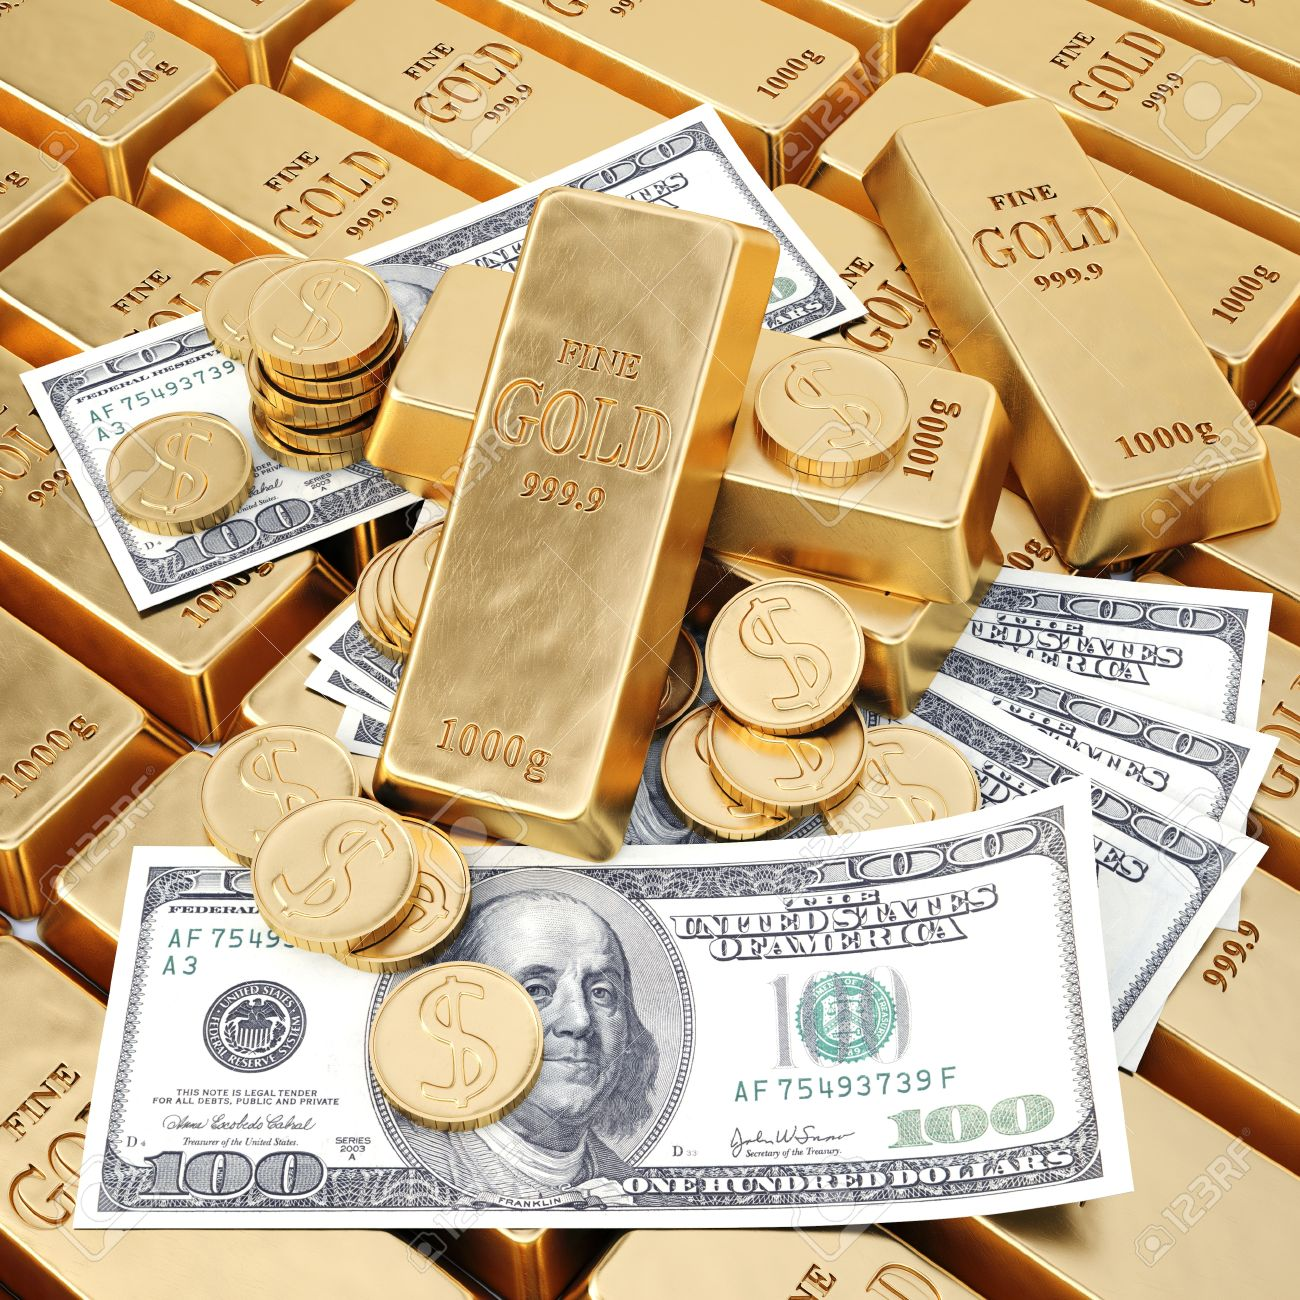 Gold Bars Coins And Paper Money Stock Photo